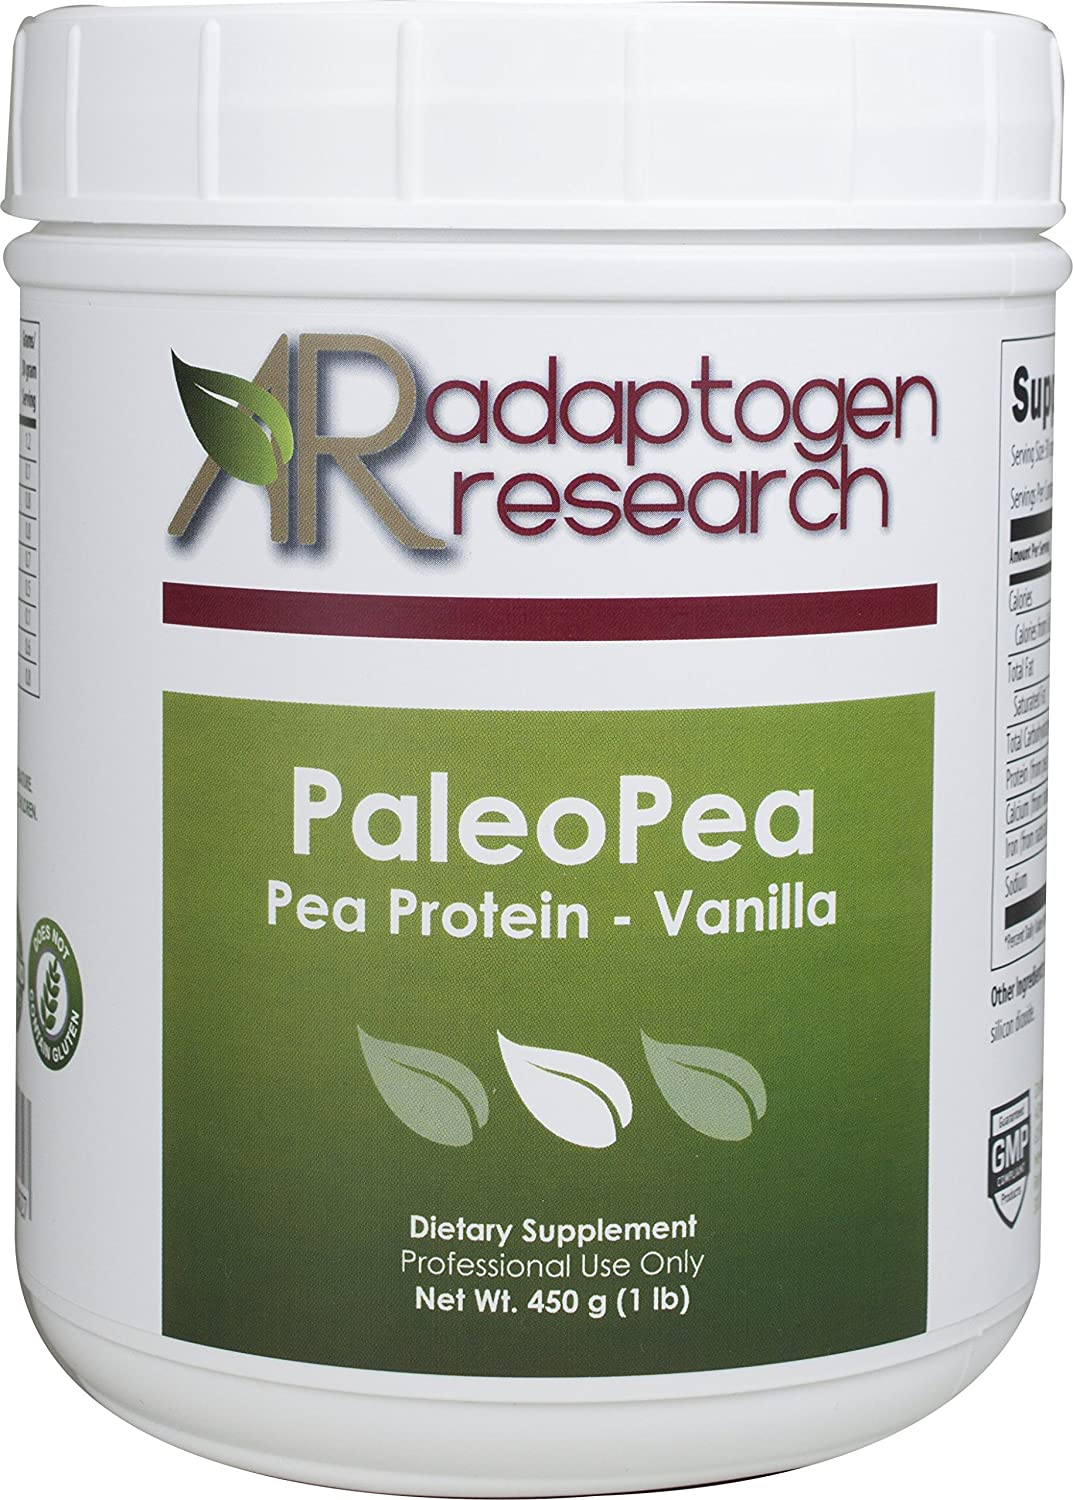 PaleoPea, Pea Protein by 450 grams - Vanilla by grams Research Adaptogen Research B01AN3WZAQ, ジーニングハウス JACK本店:cff5a25b --- dakuwebsite.xyz